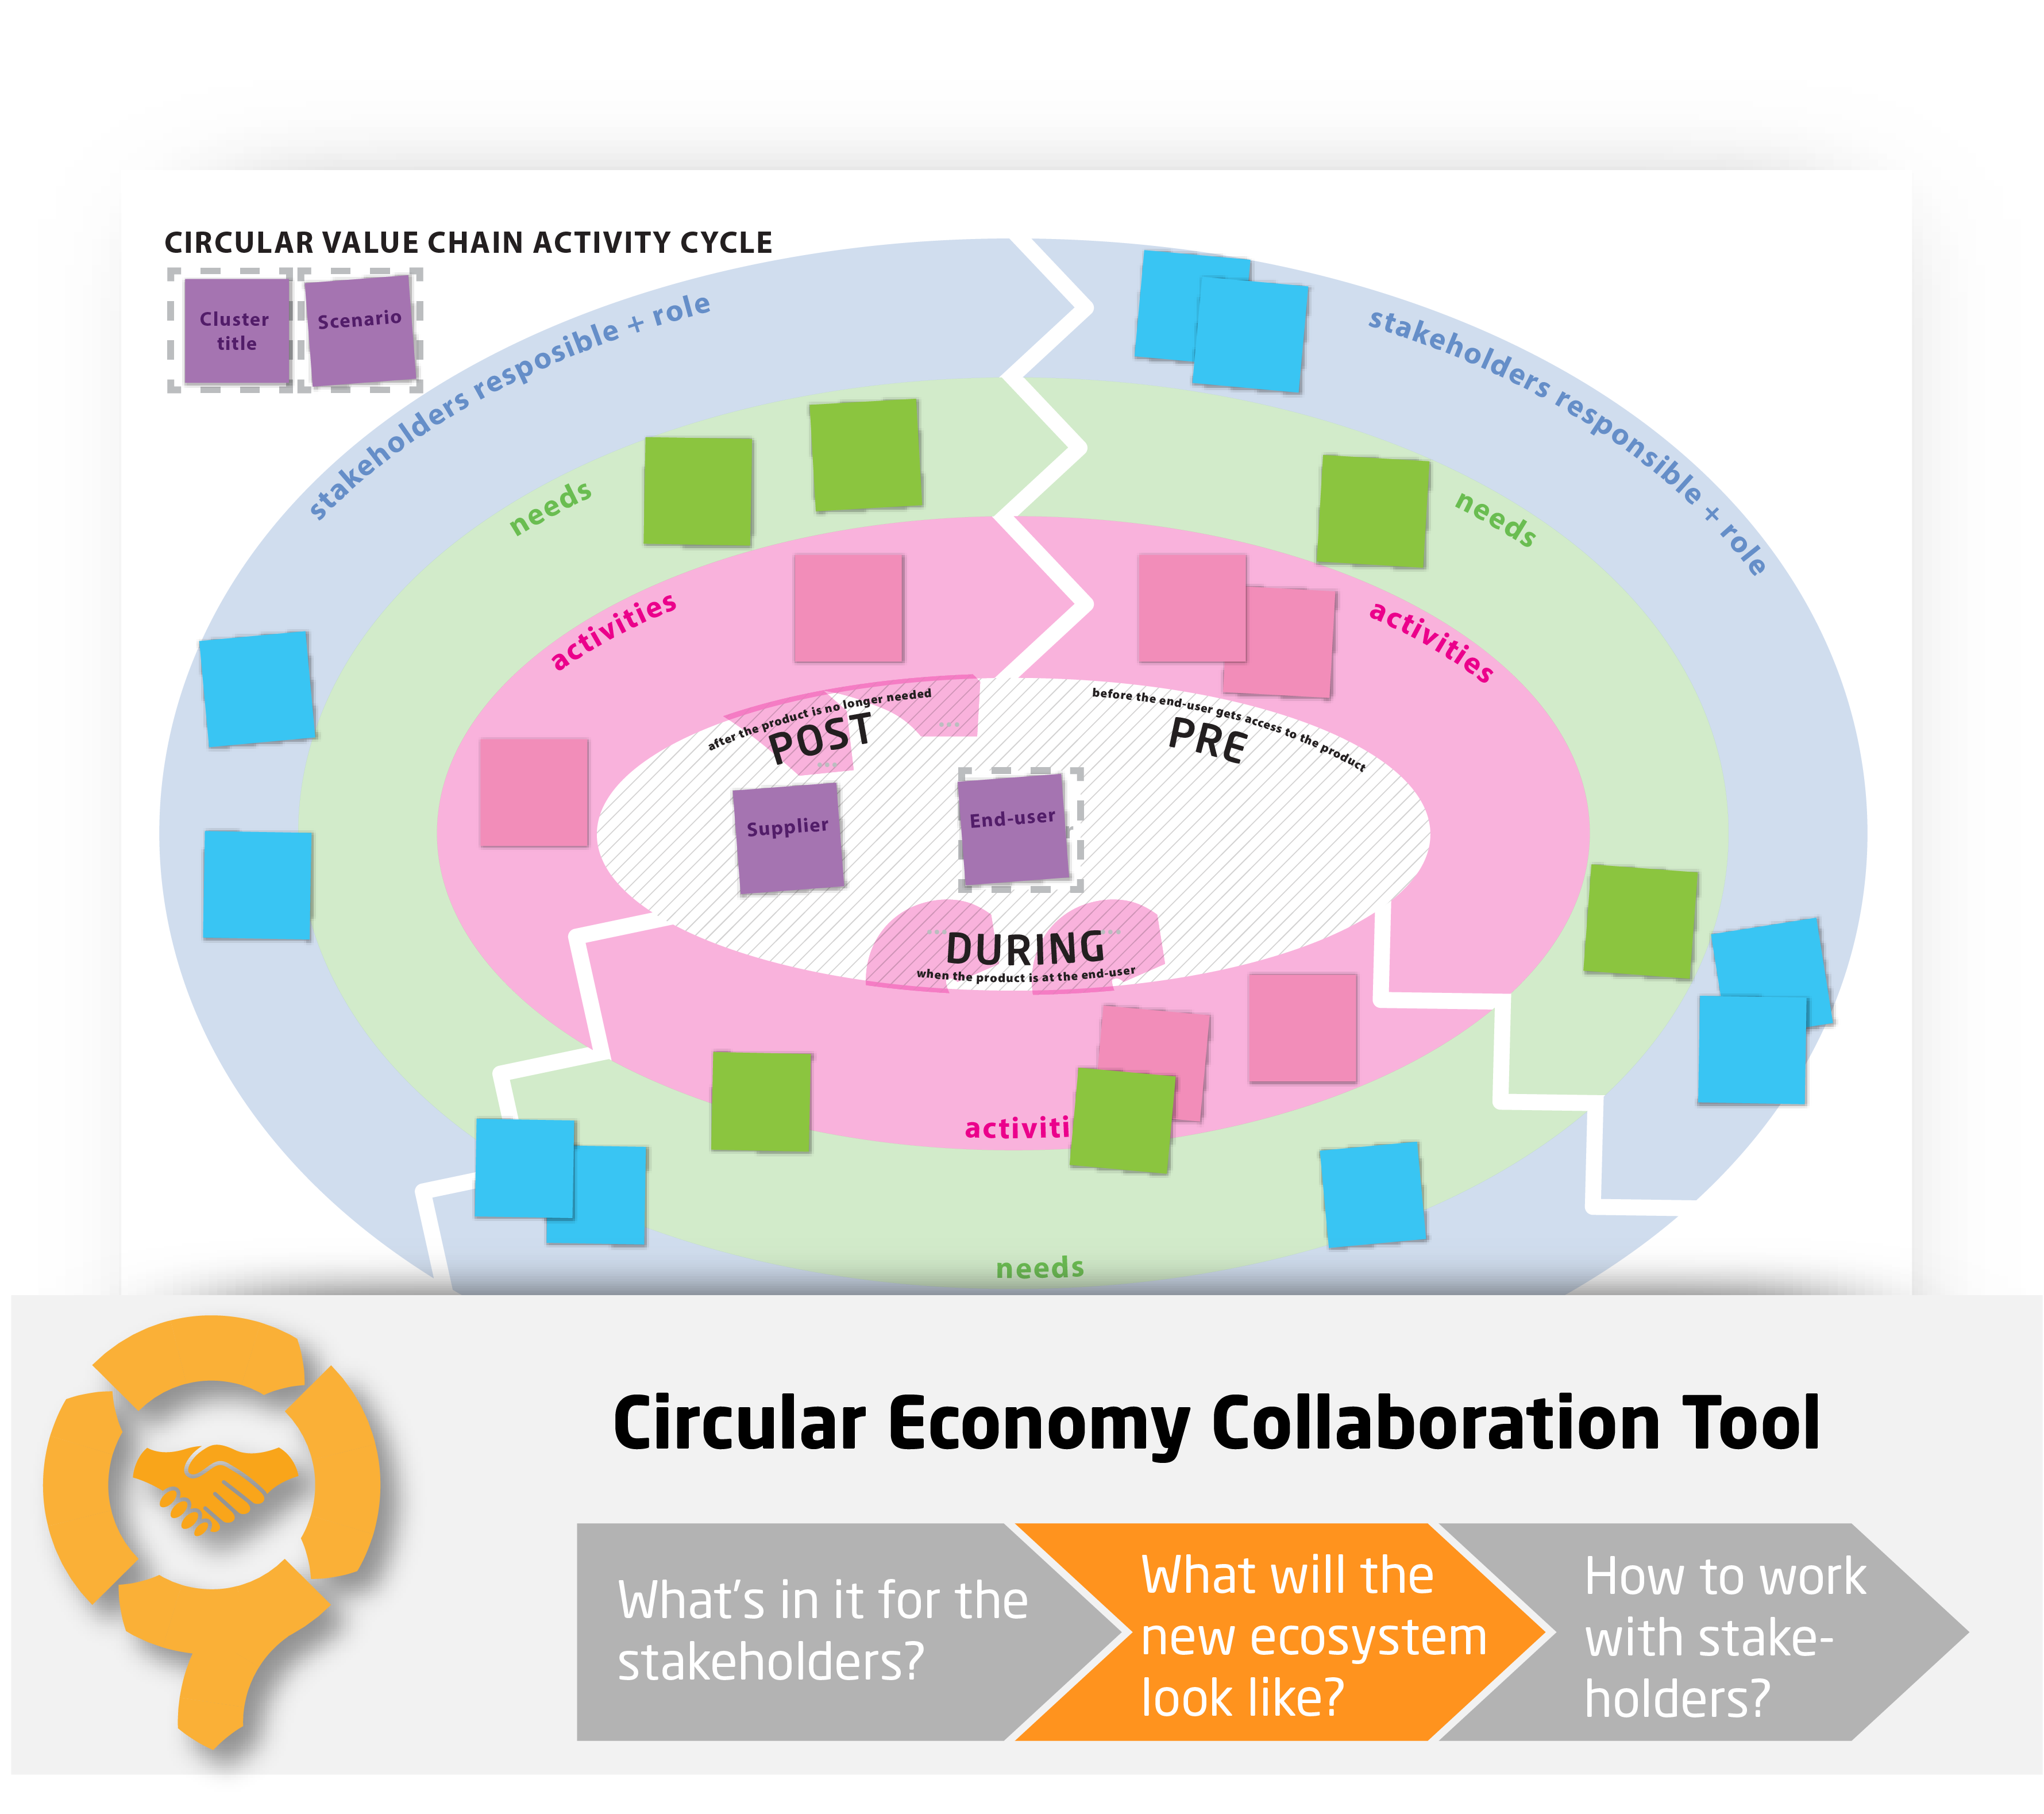 Circular Value Chain Activity Cycle - CIRCit Nord